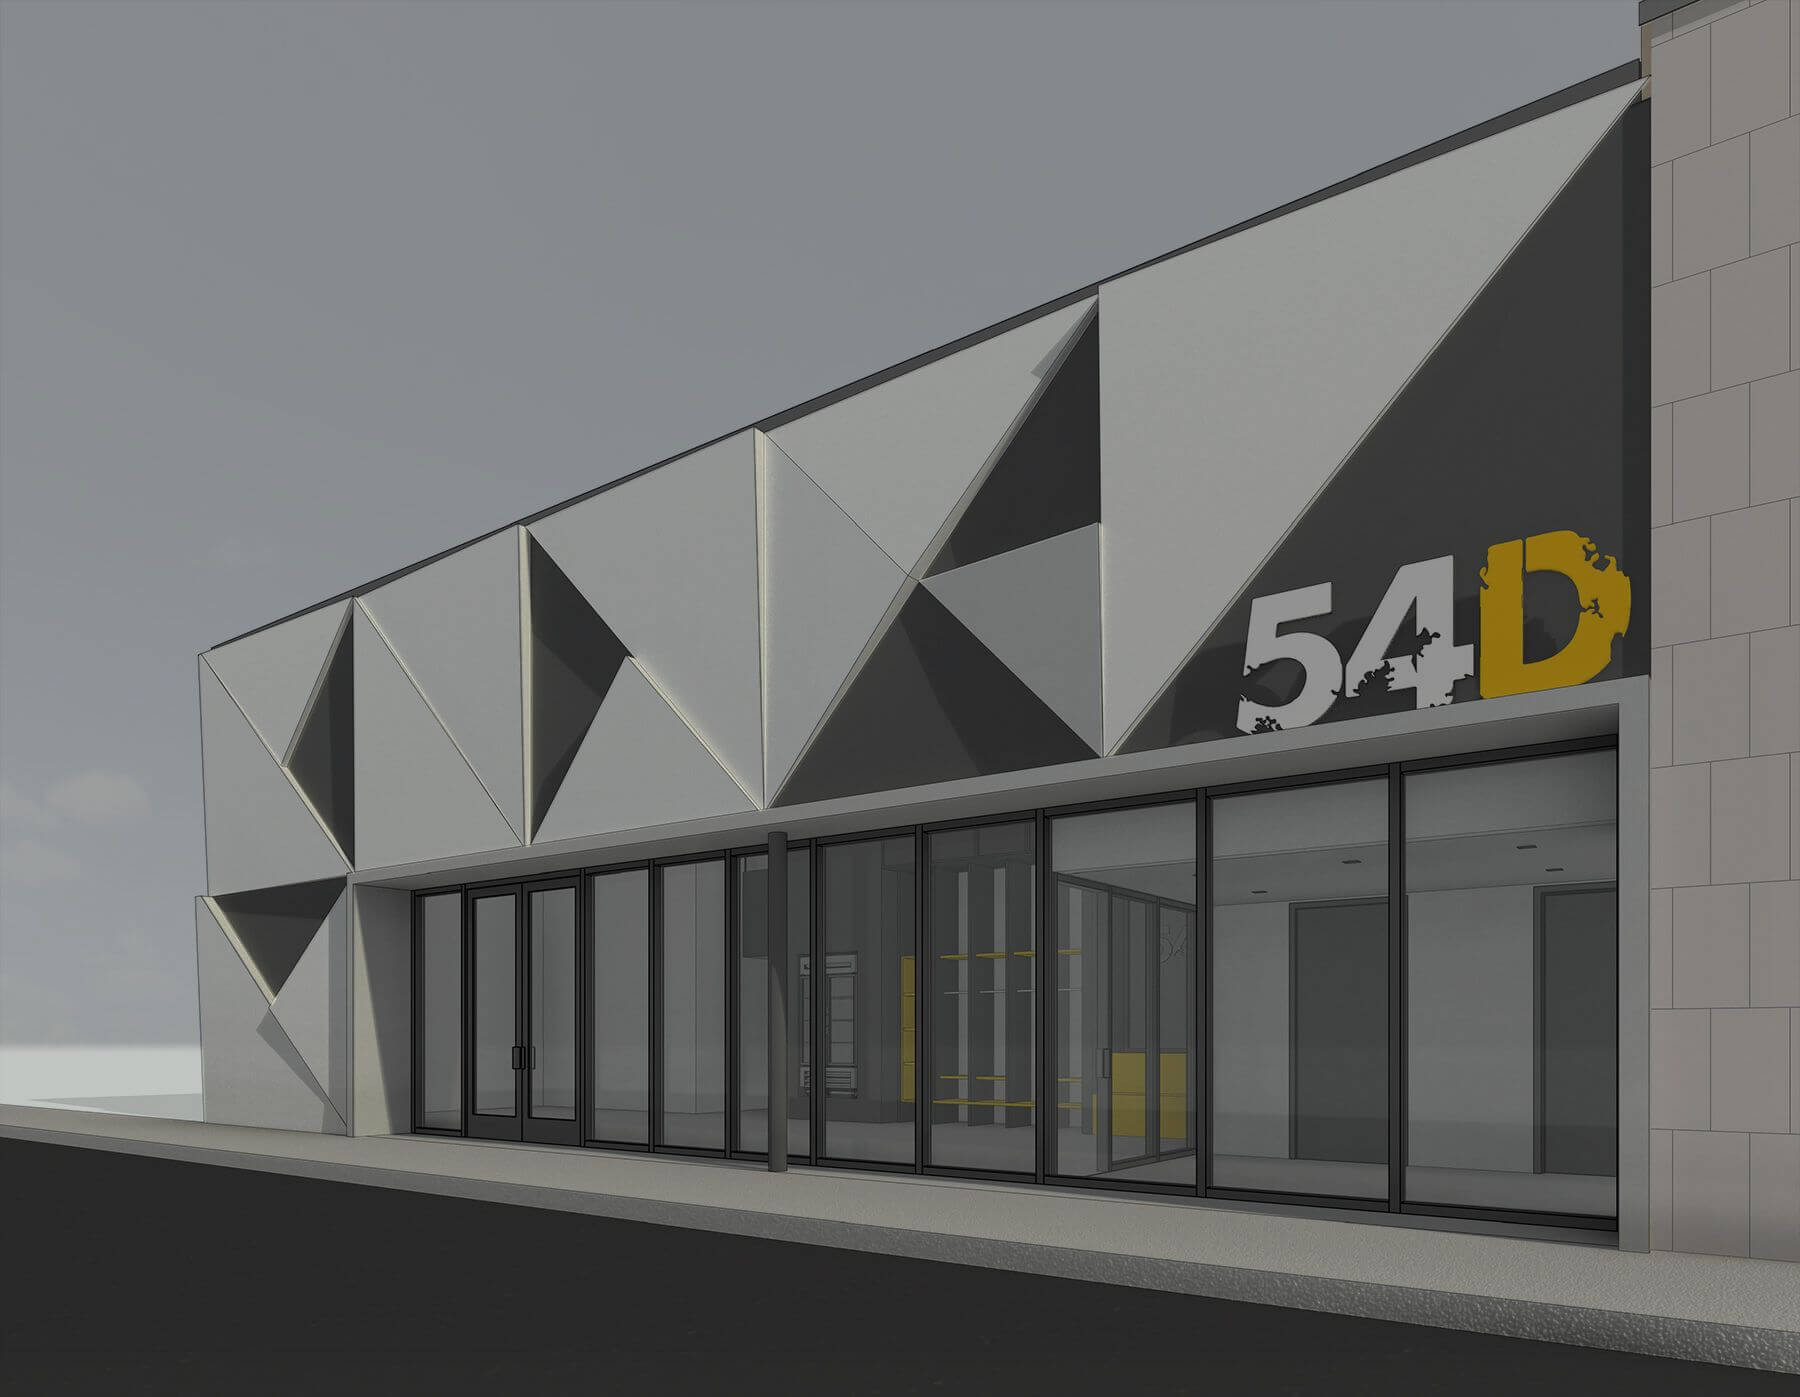 rendering of future 54D store front location